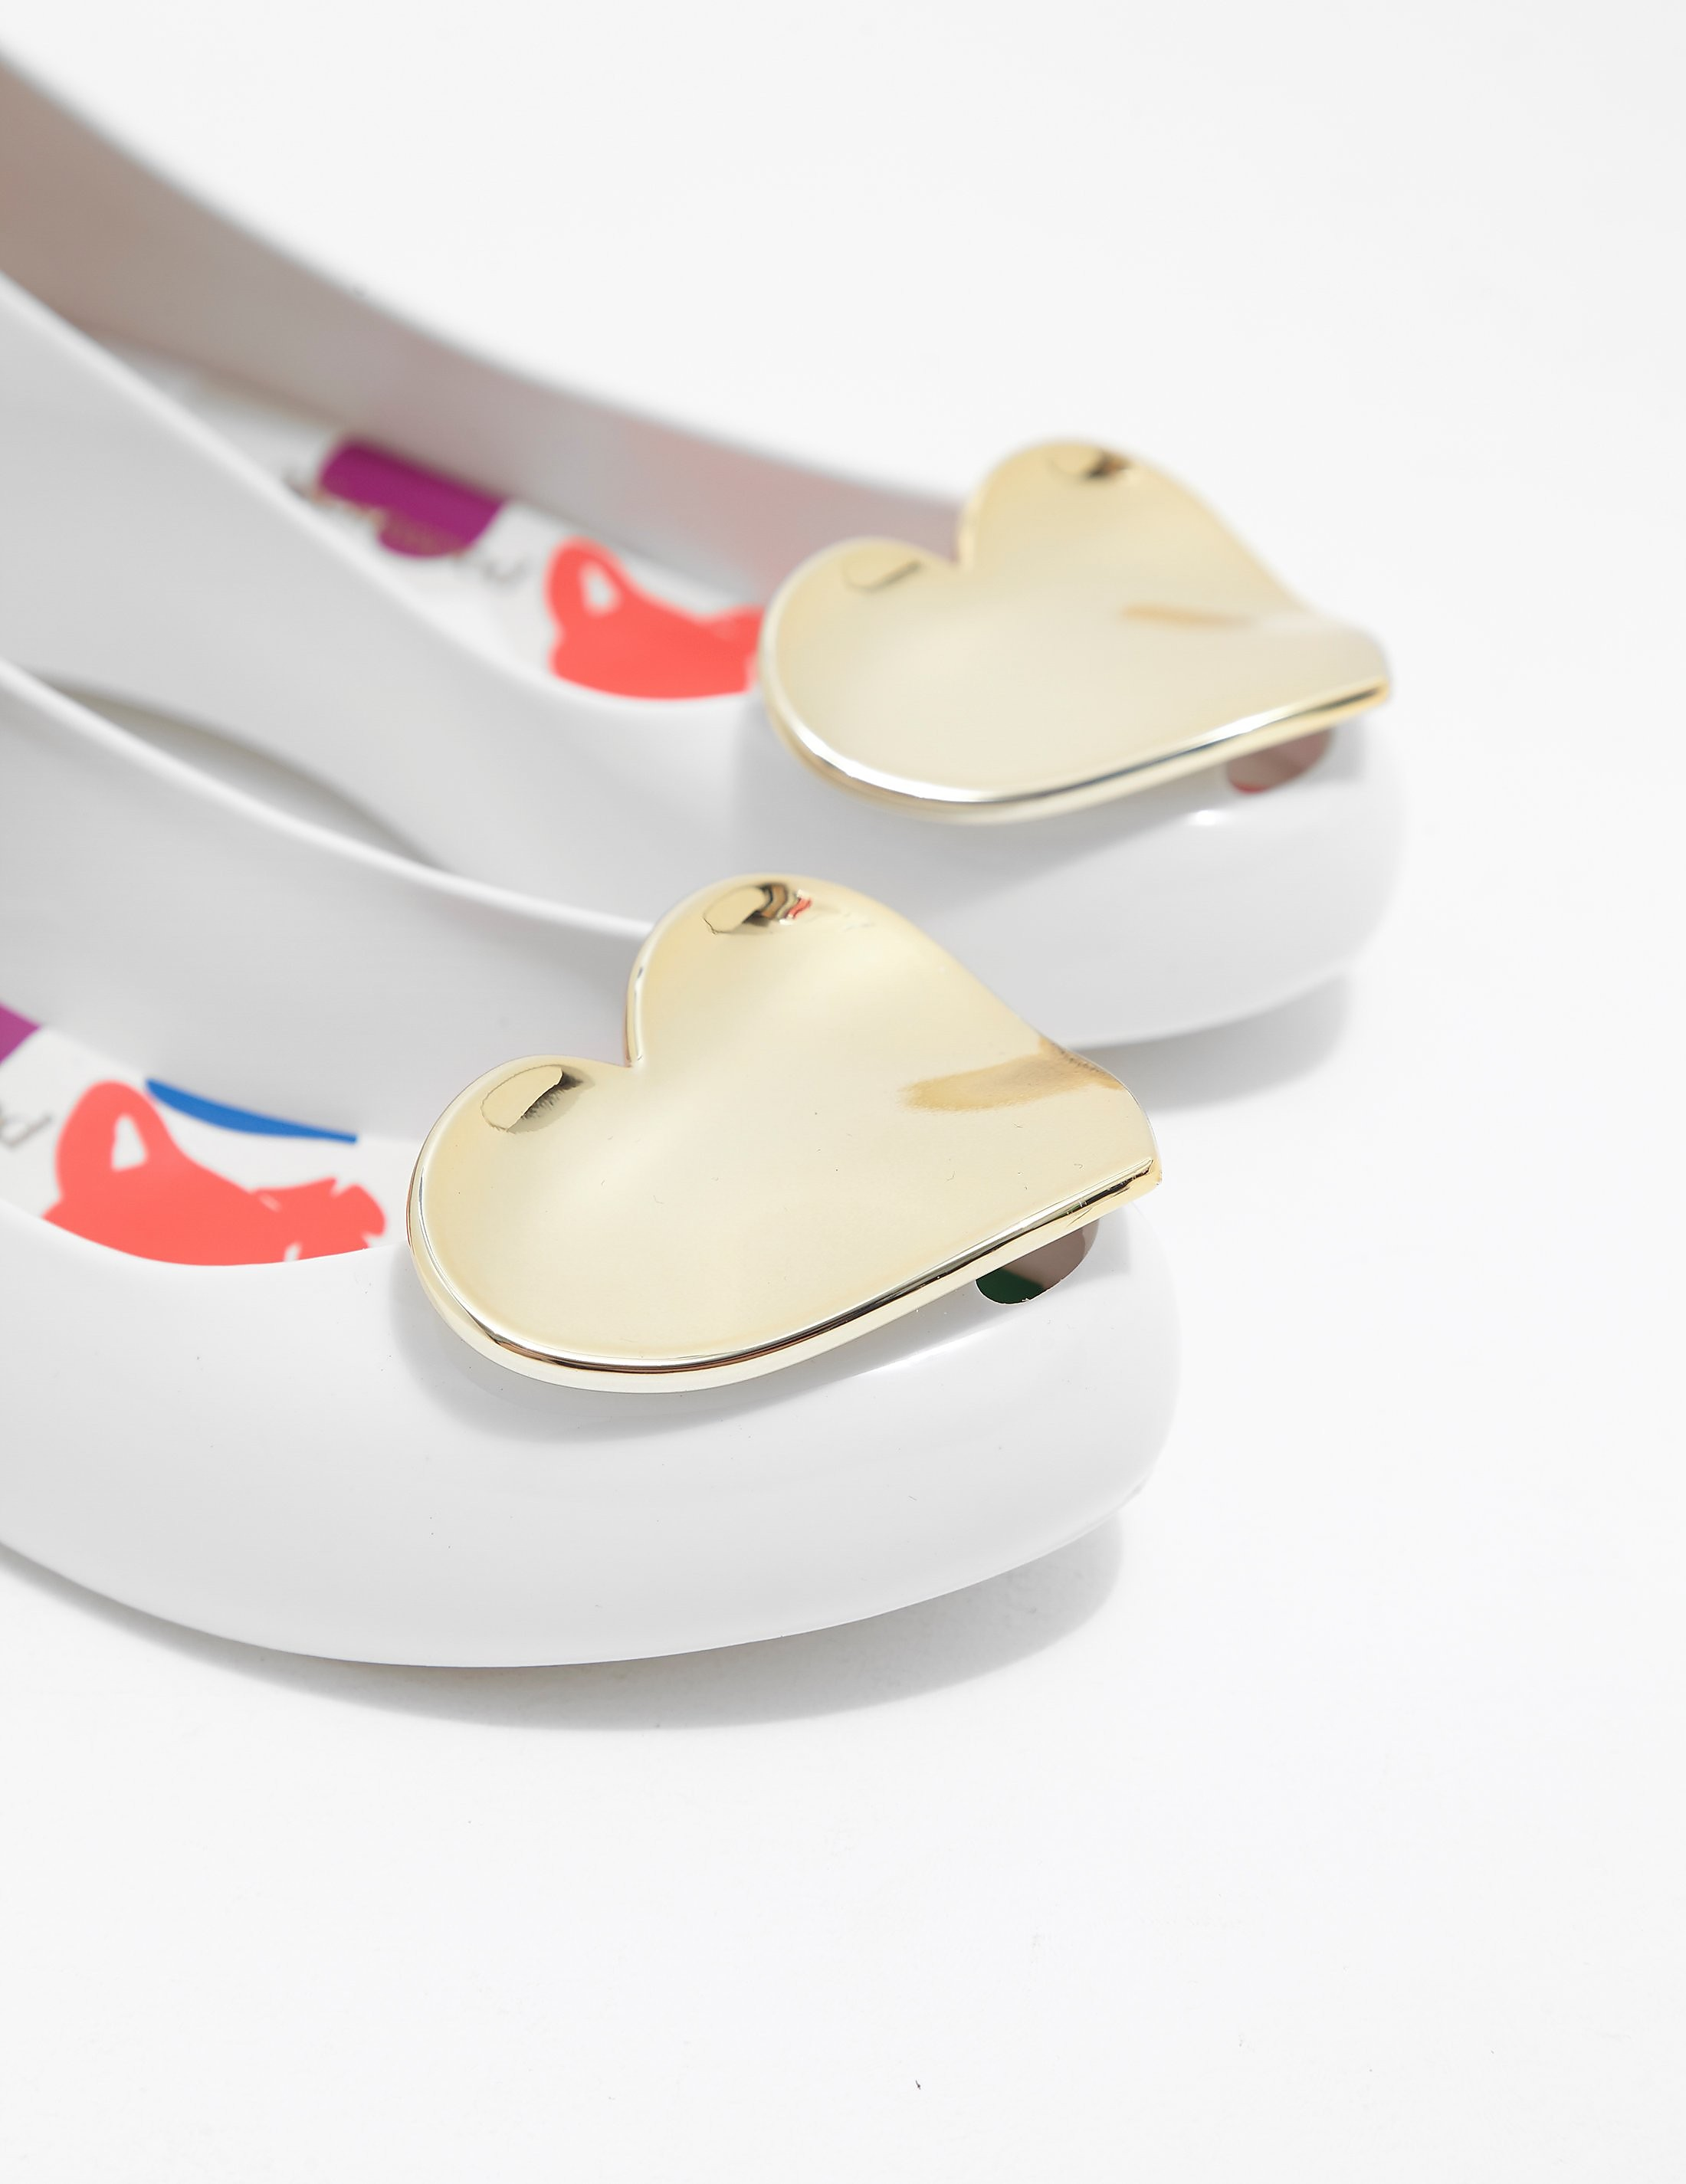 Melissa x Vivienne Westwood Anglomania Ultragirl Heart